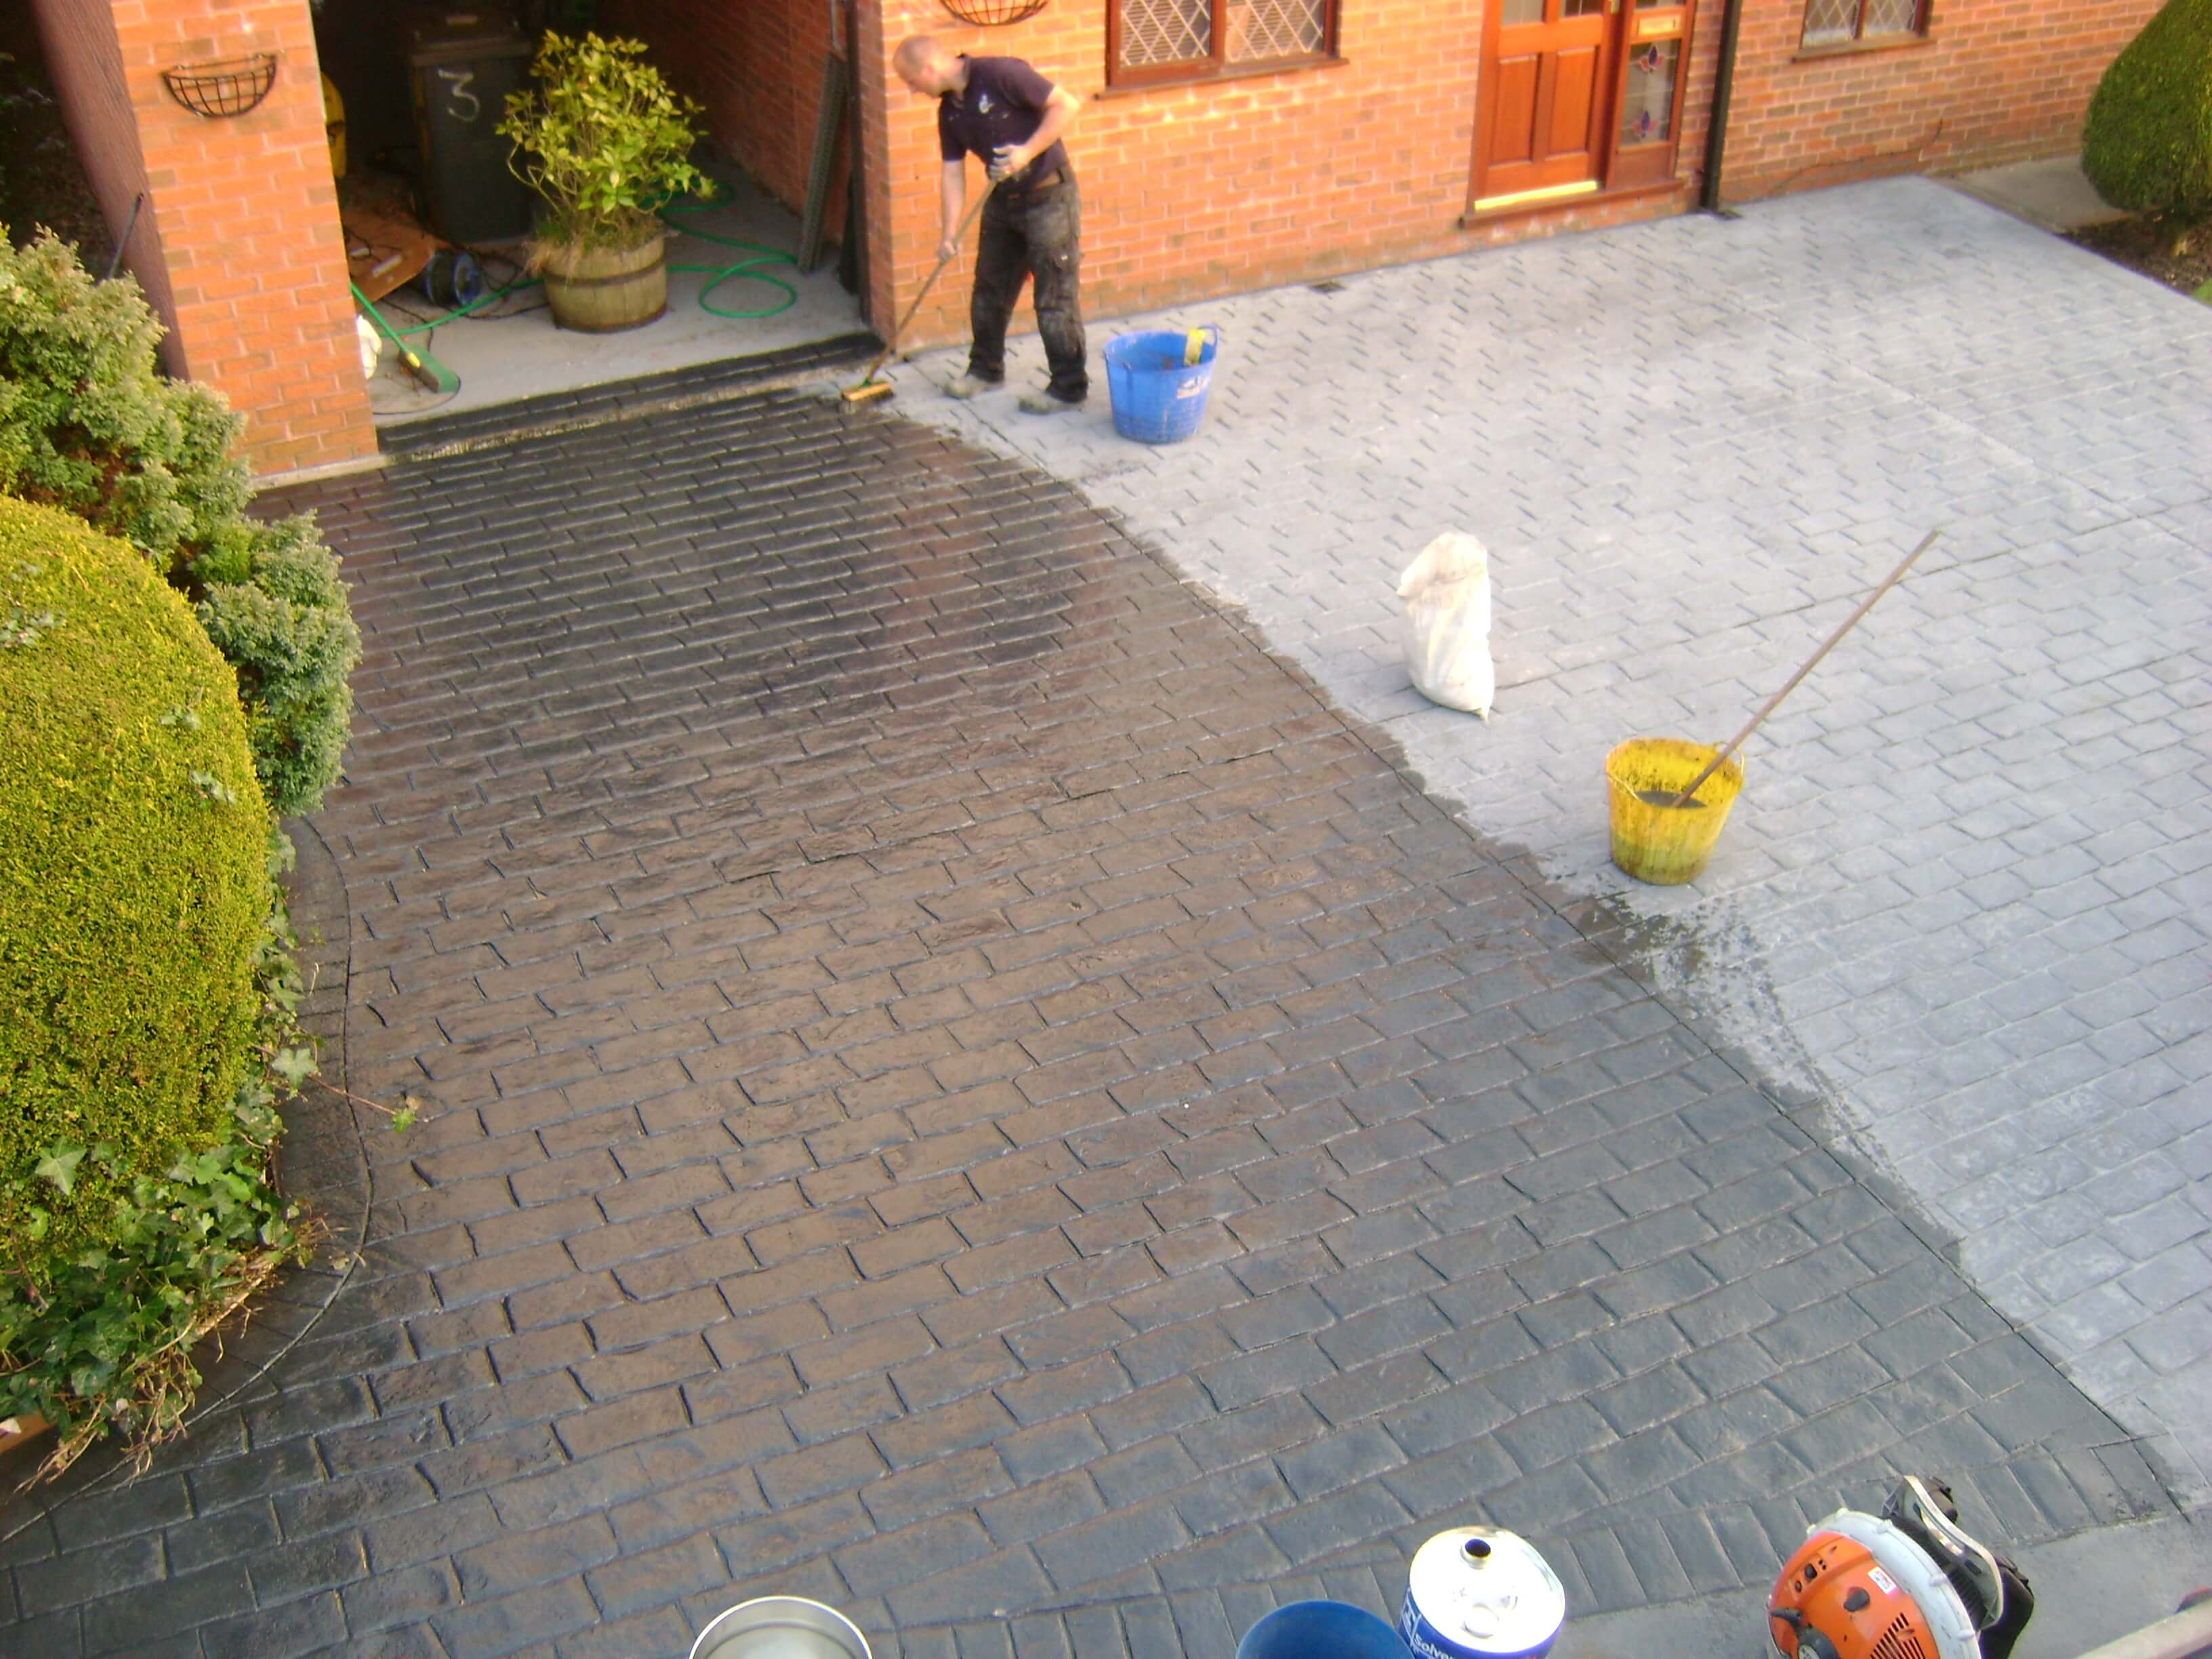 Applying sealant to concrete driveway